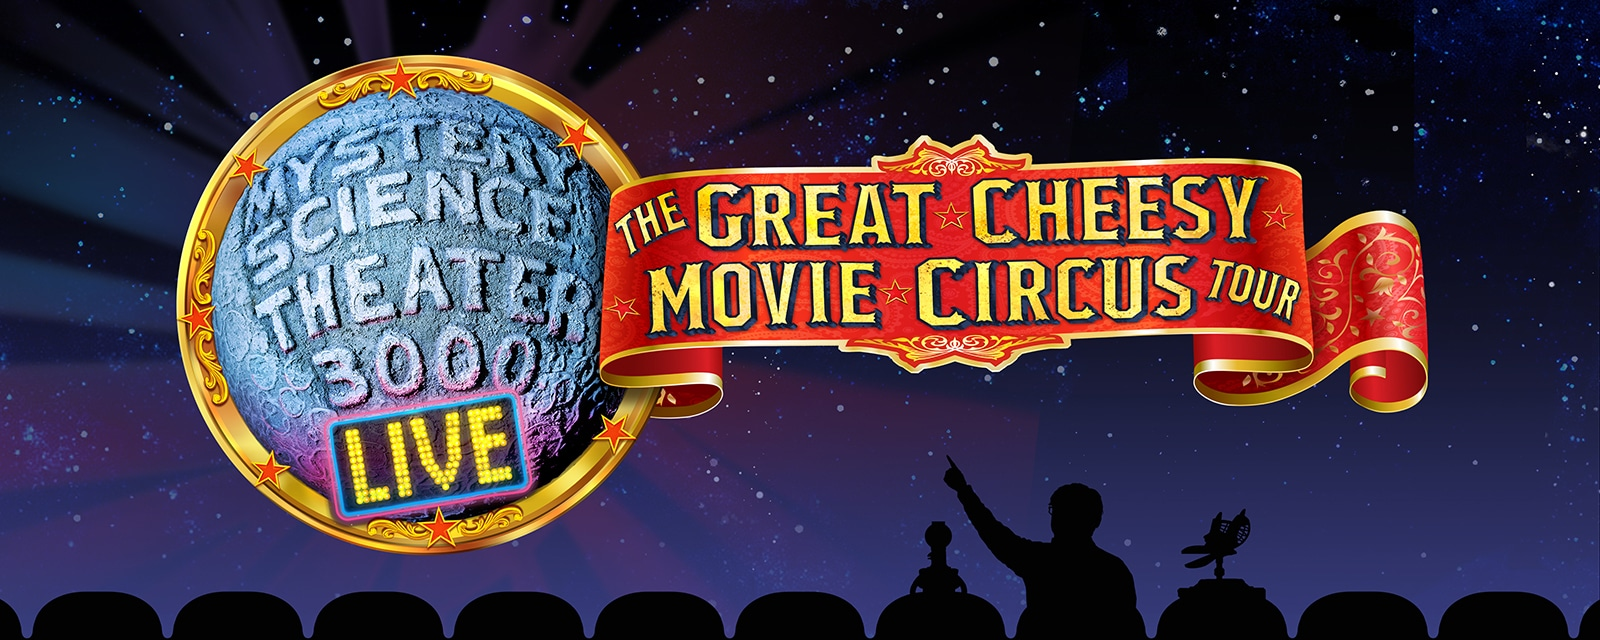 Mystery Science Theatre 3000 Live - The Great Cheesy Movie Circus Tour